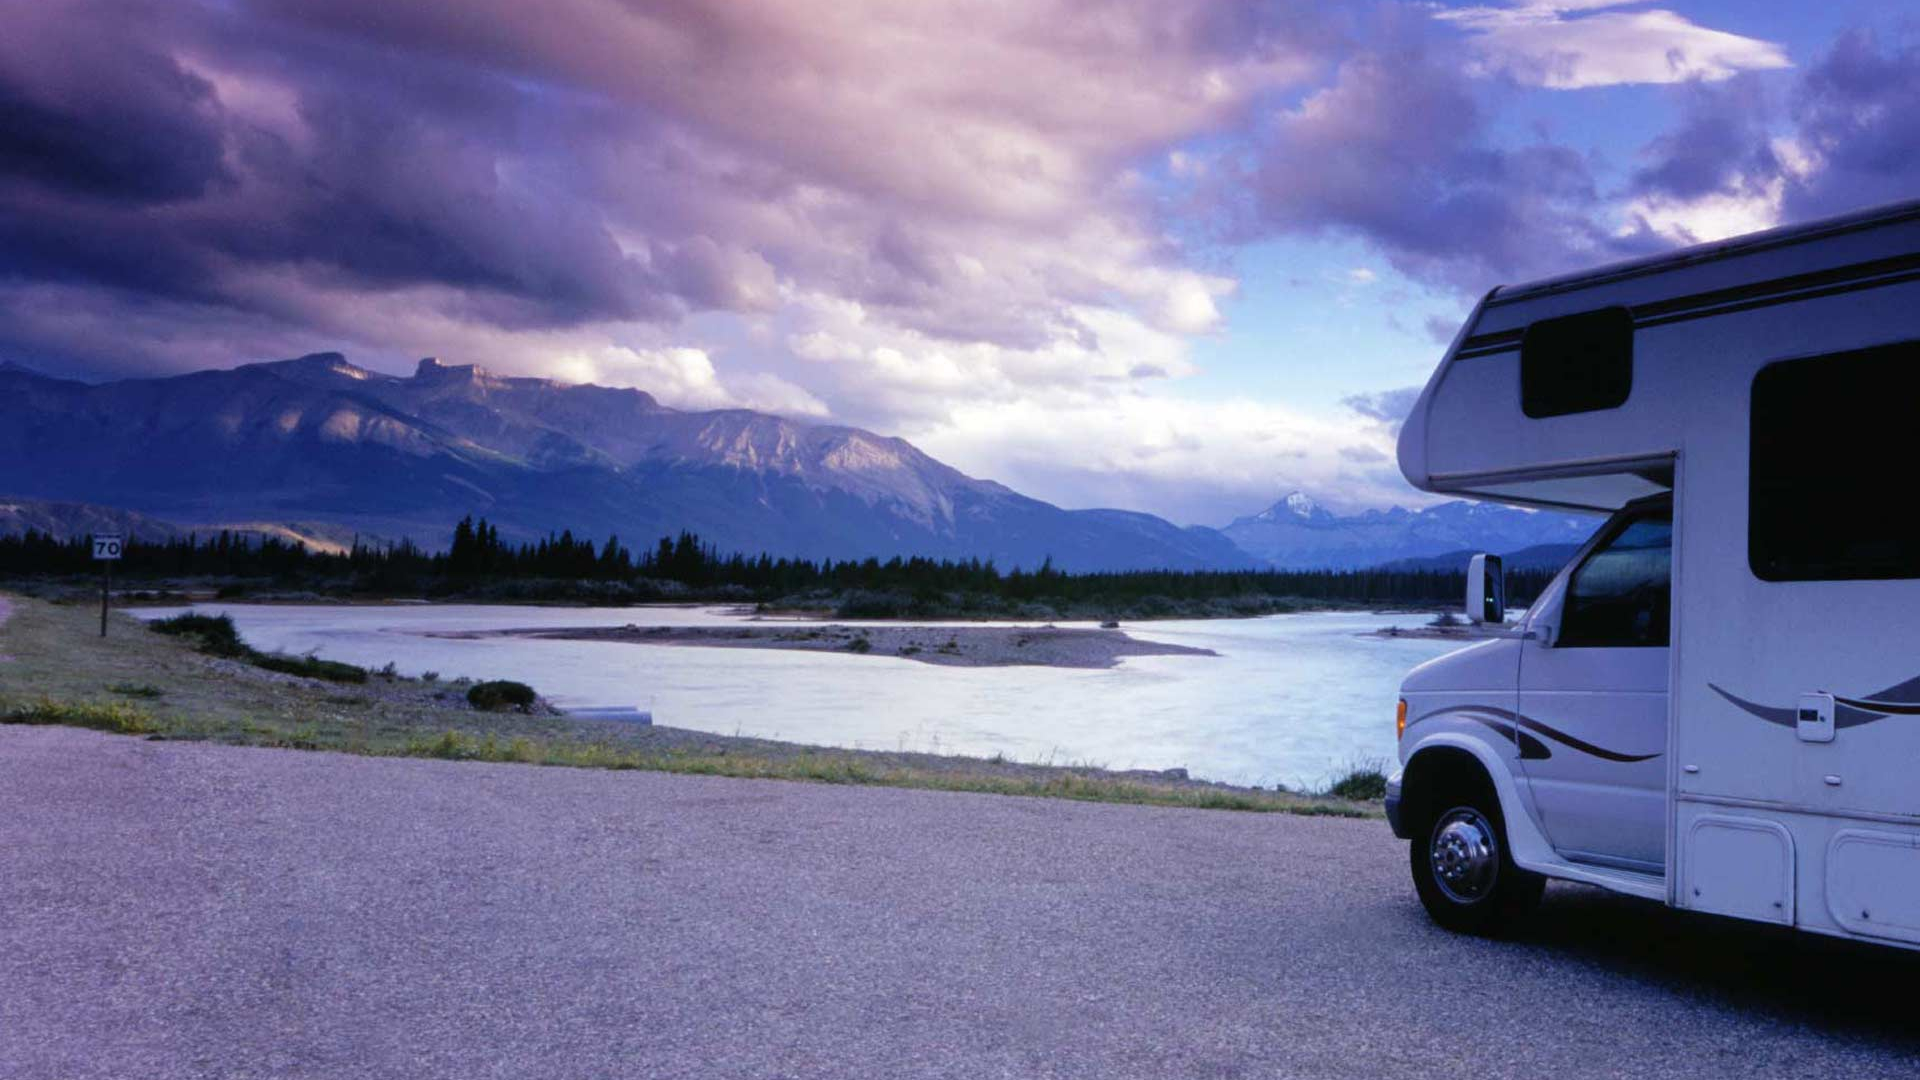 Goodyear Rv Tires Performance Durability And Comfort >> Download Goodyear Rv Tires Performance Durability And Comfort